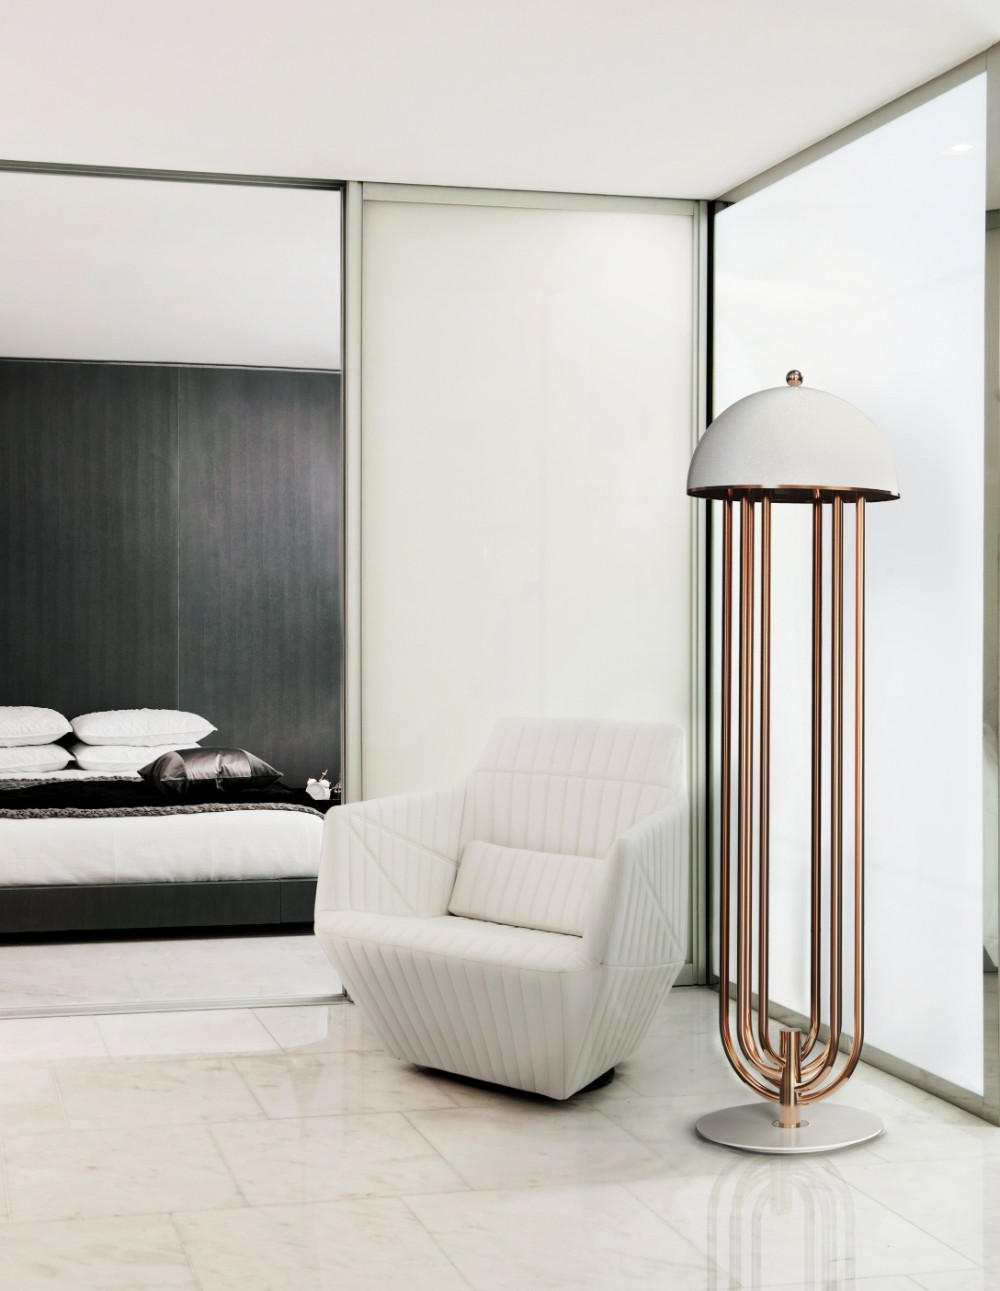 Find Out Why We Love Modern Floor Lamps So Much 1  Find Out Why We Love Modern Floor Lamps So Much Find Out Why We Love Modern Floor Lamps So Much 8